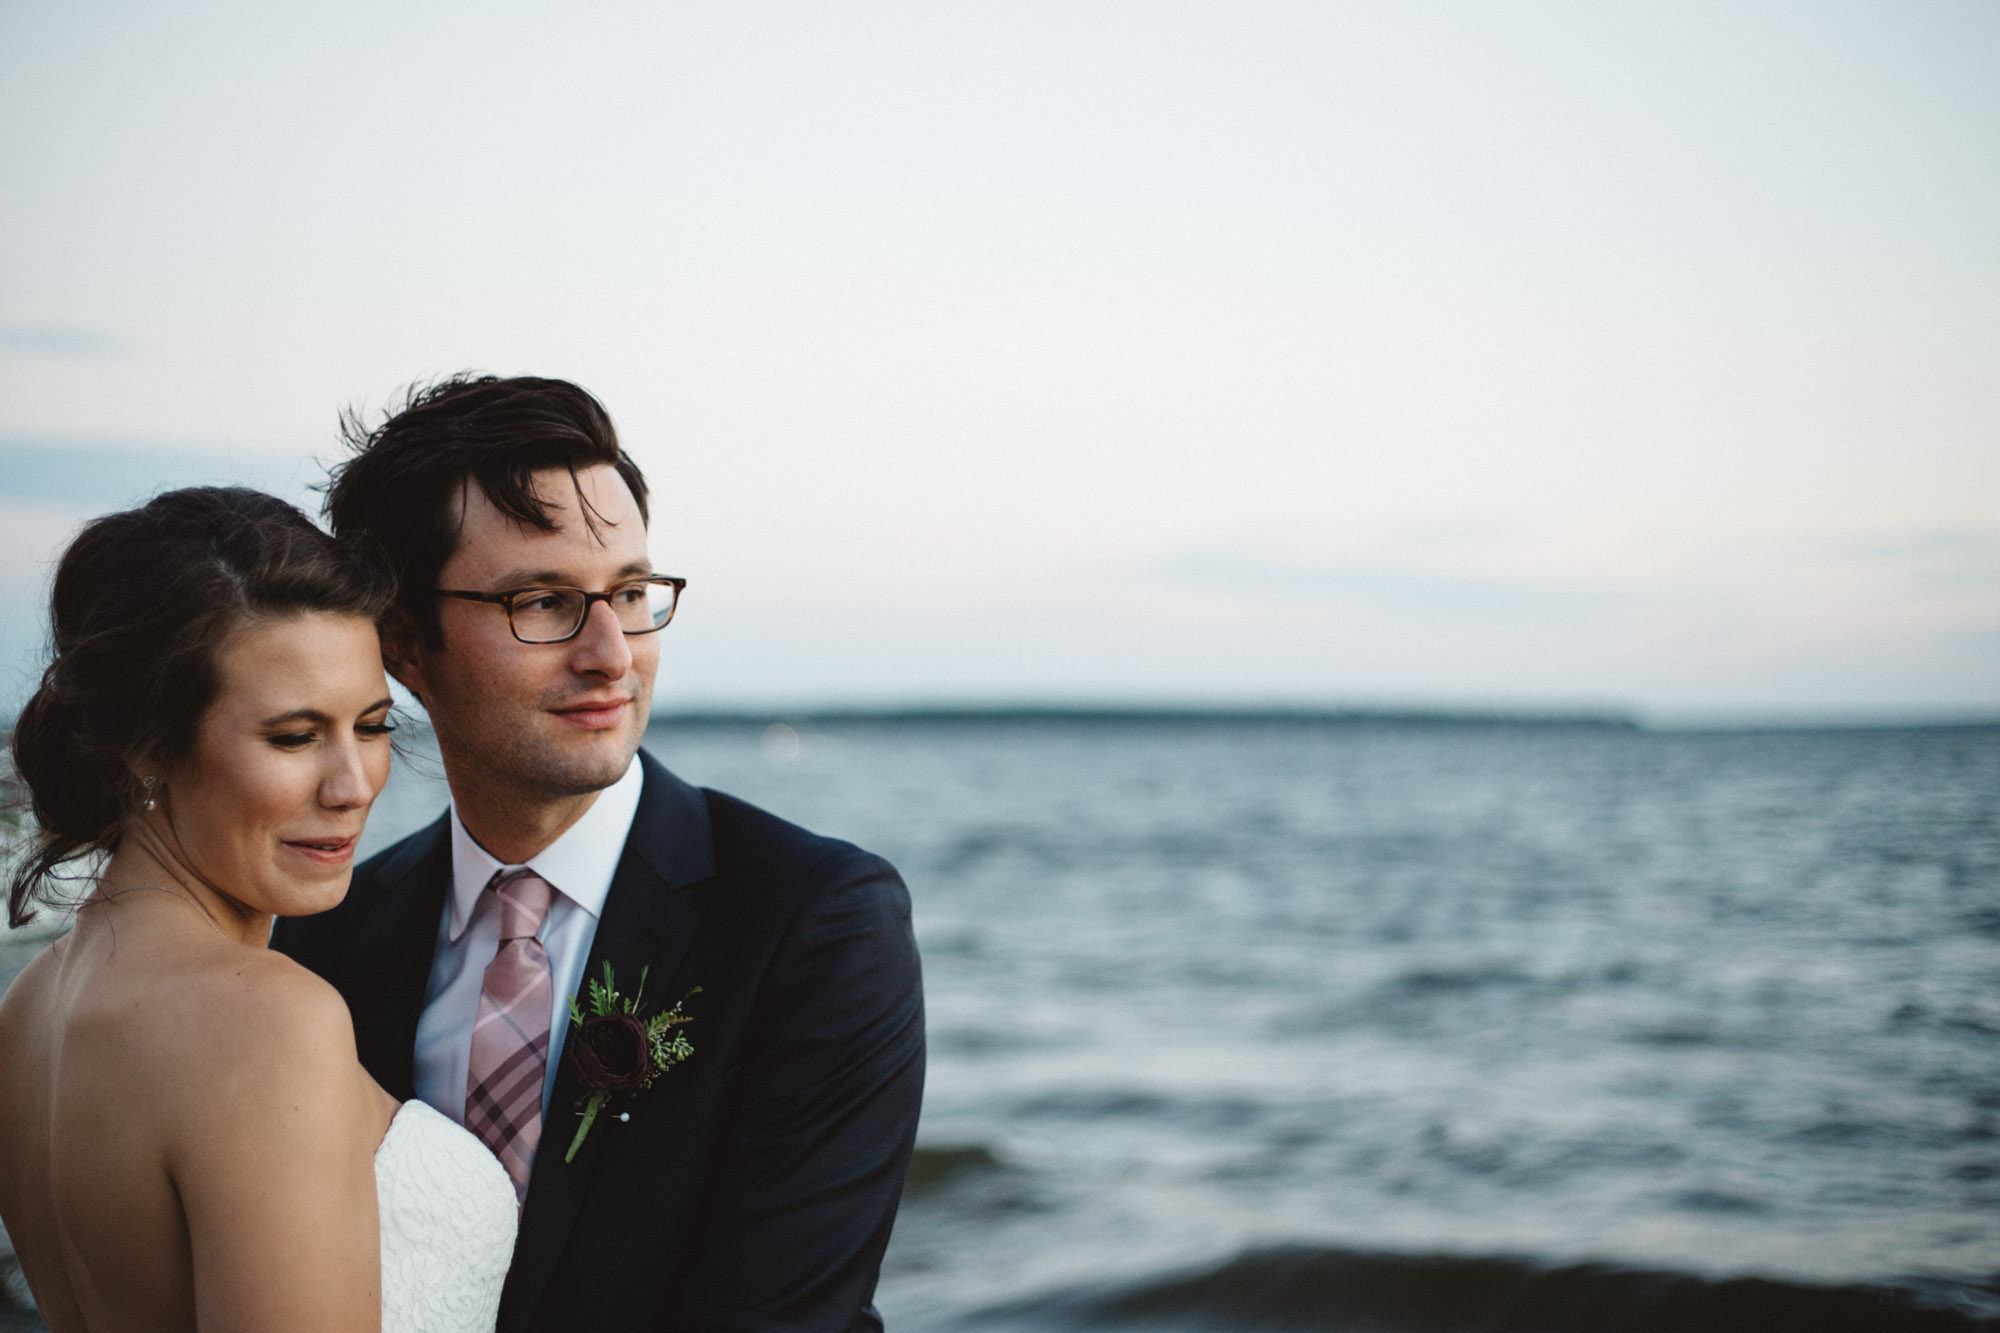 Lake side wedding portraits at Grand View Lodge, photography by Britt DeZeeuw